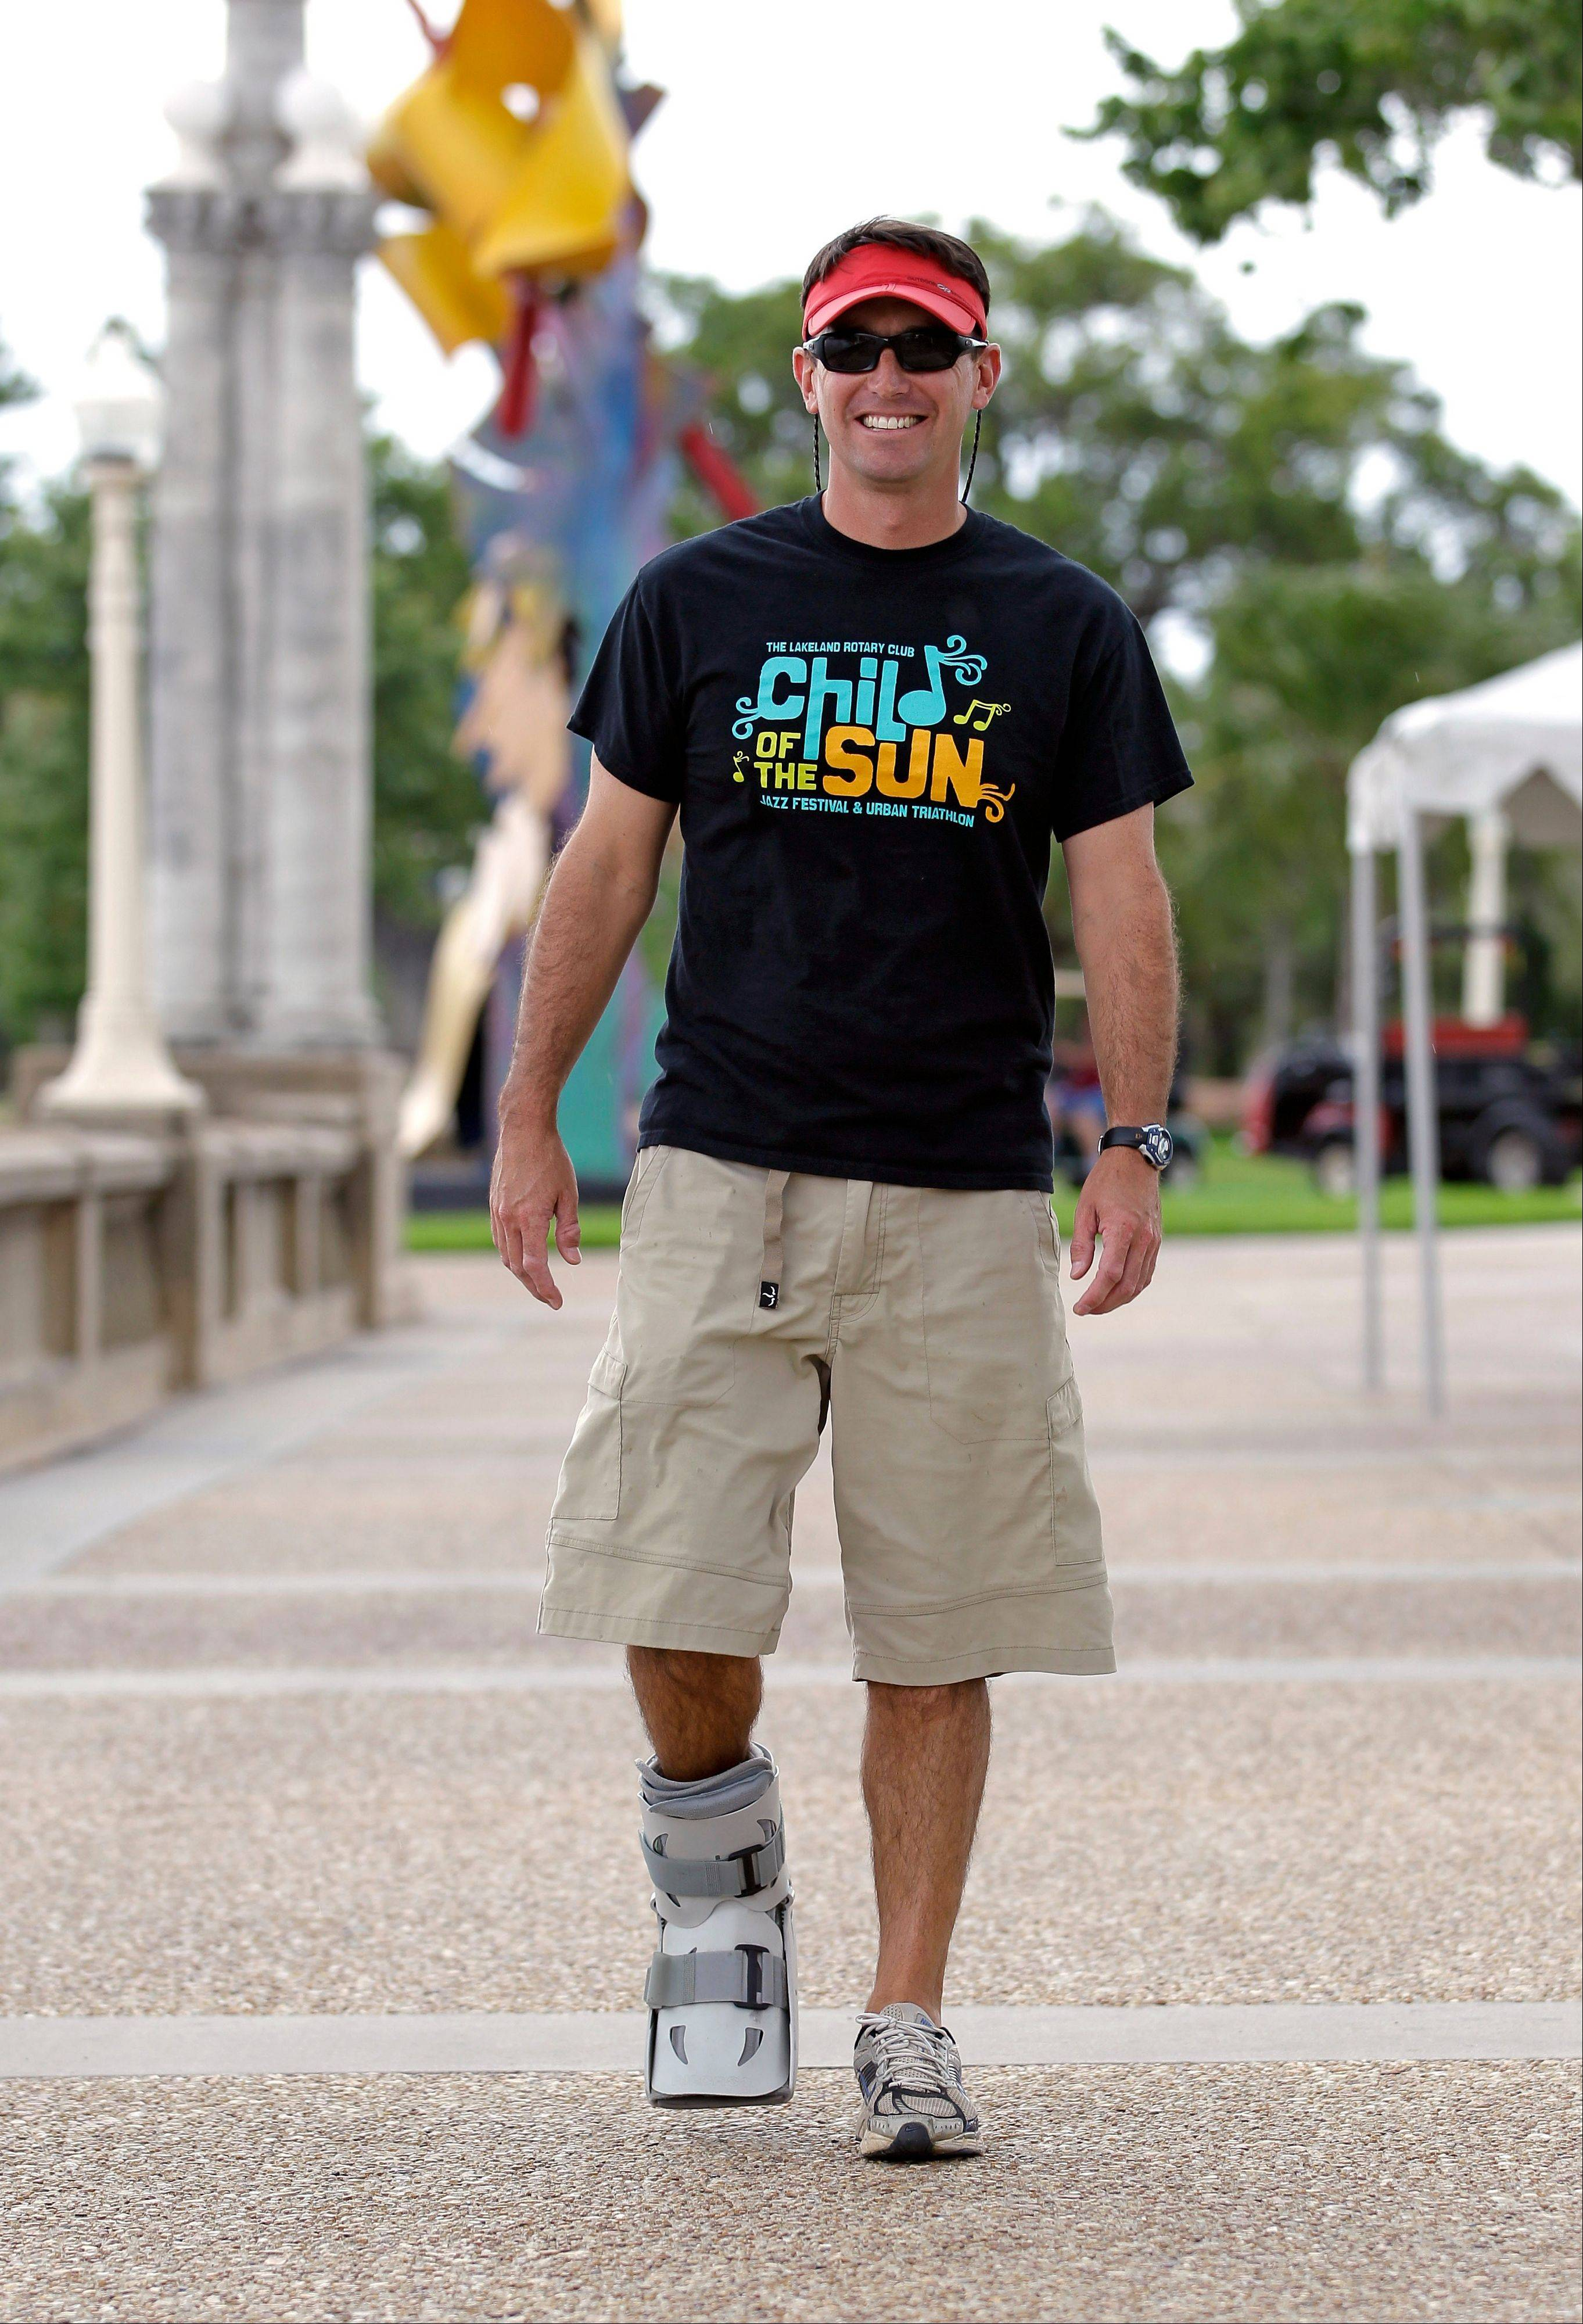 Greg Farris walks while wearing a protective boot as he helps set up for a weekend triathlon event in Lakeland, Fla. Farris injured his foot while running in barefoot running shoes.